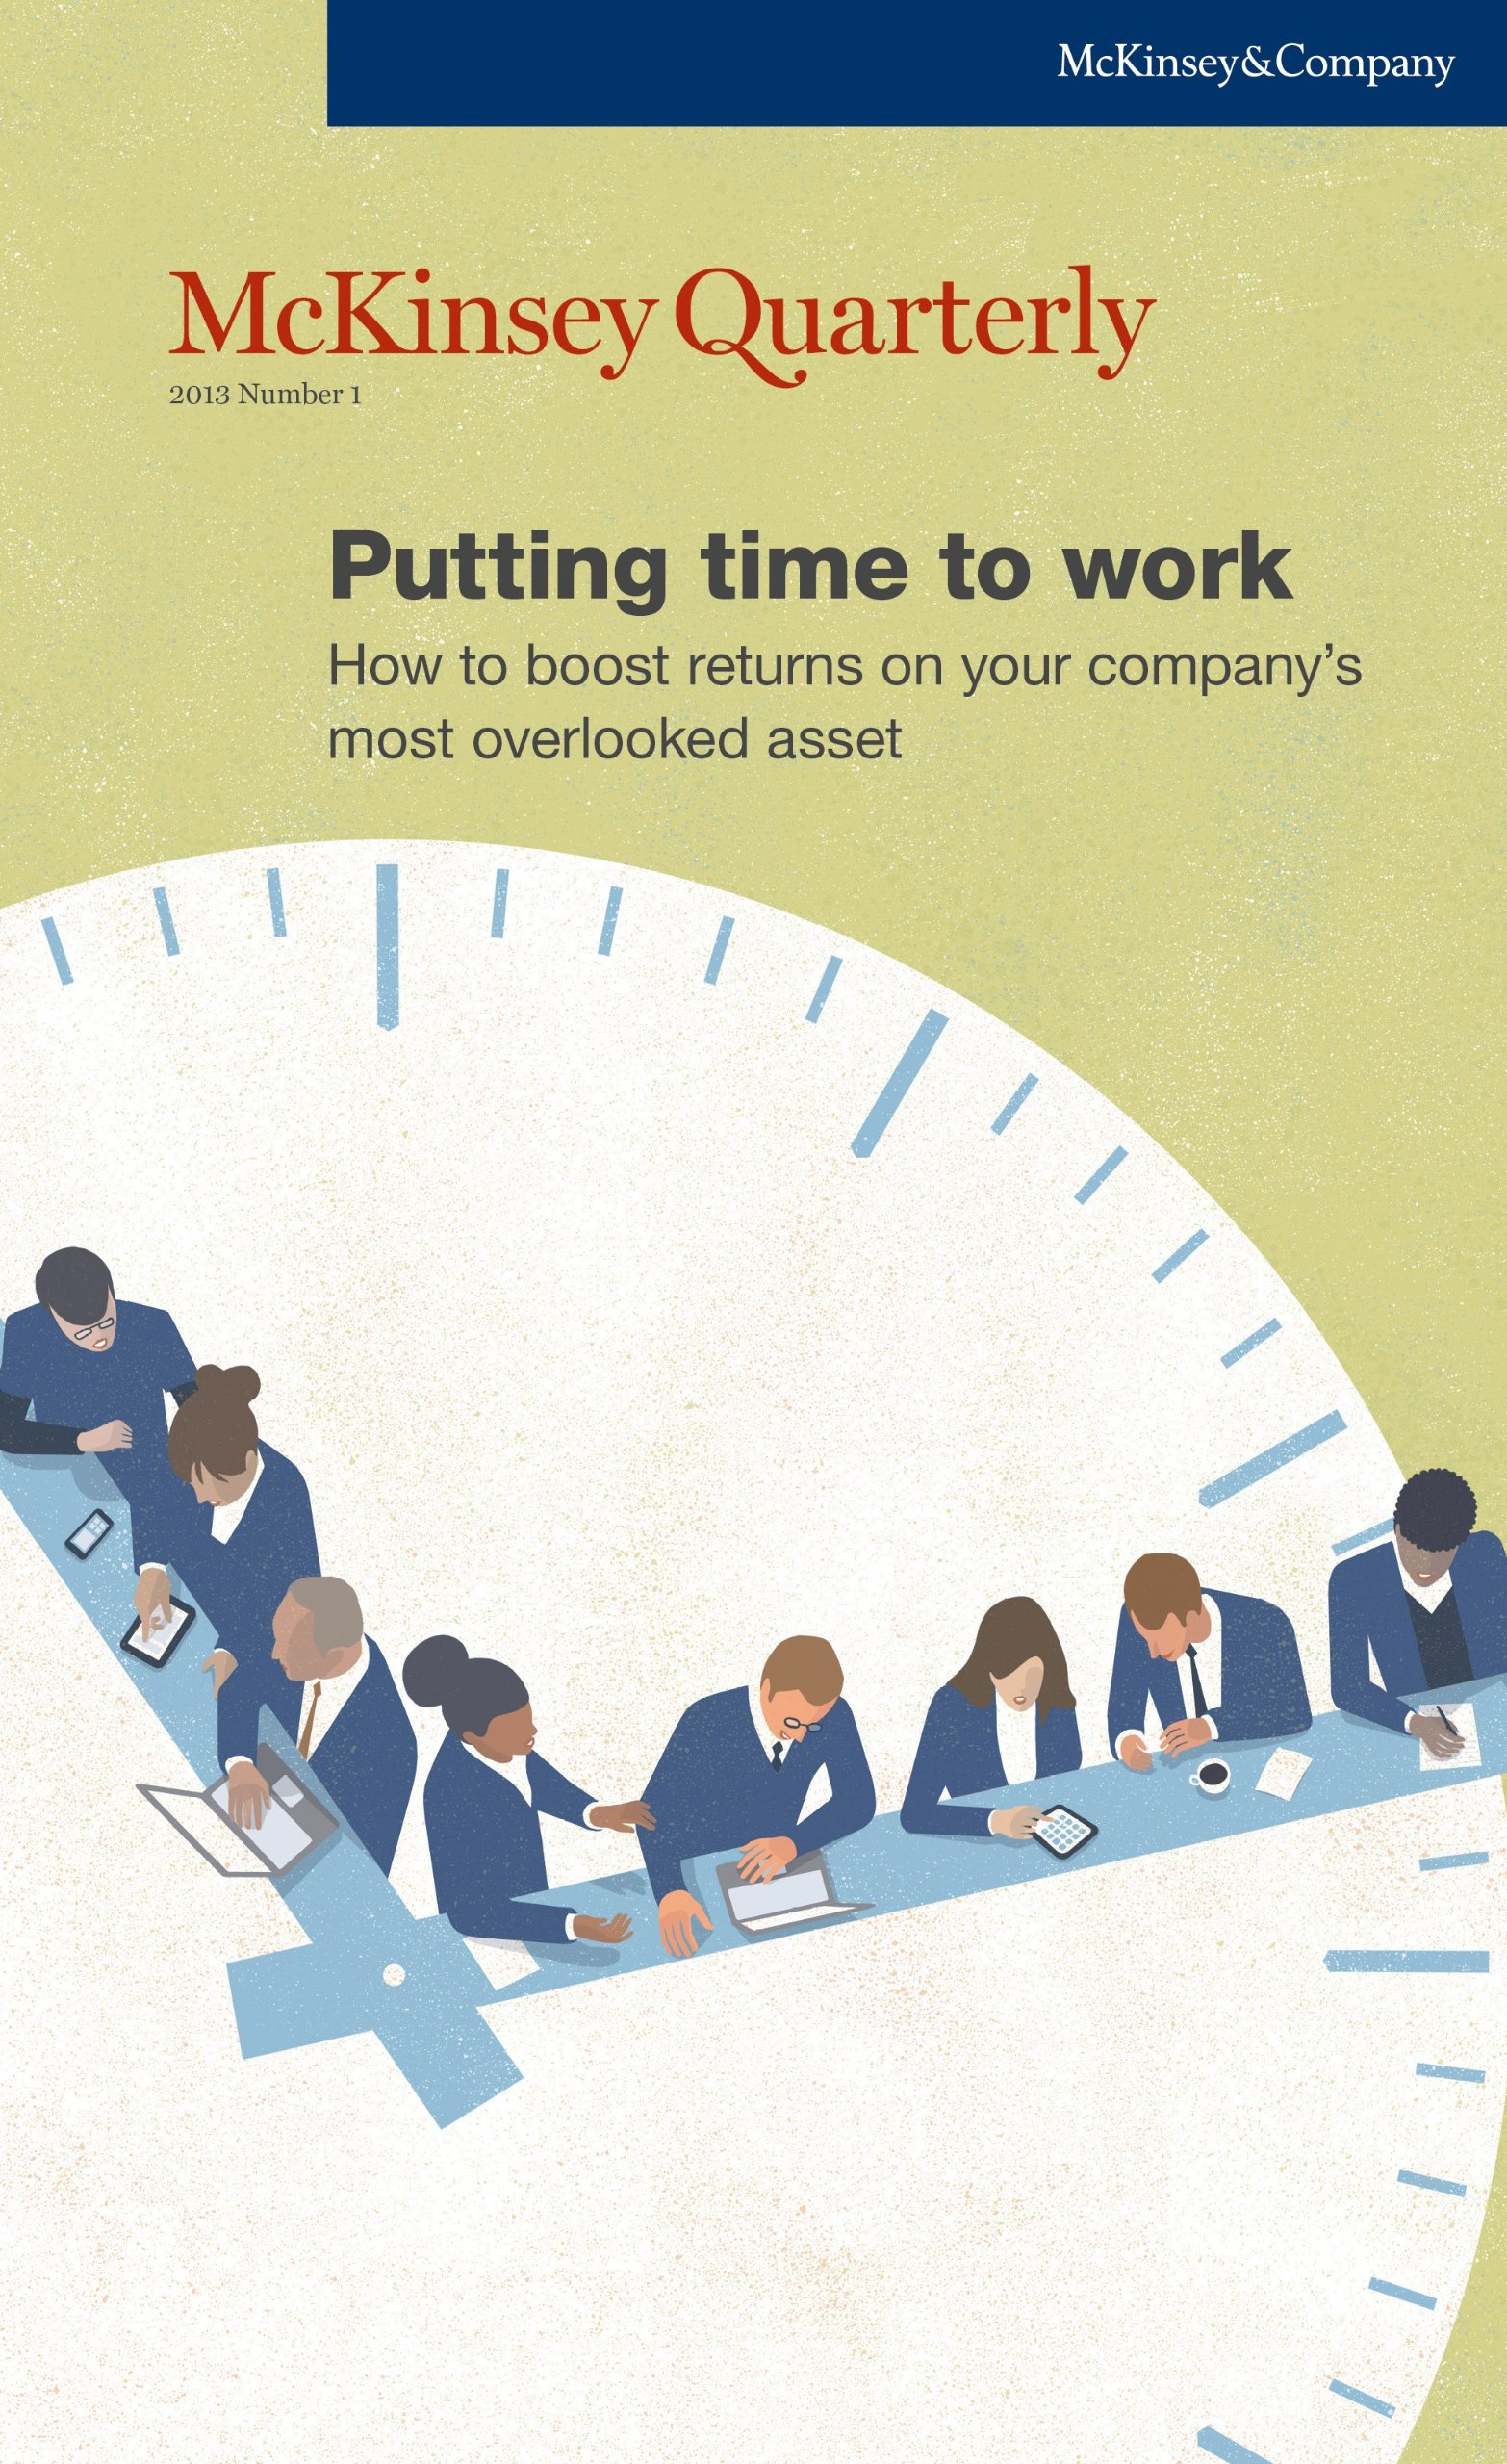 Strategy to beat the odds | McKinsey & Company